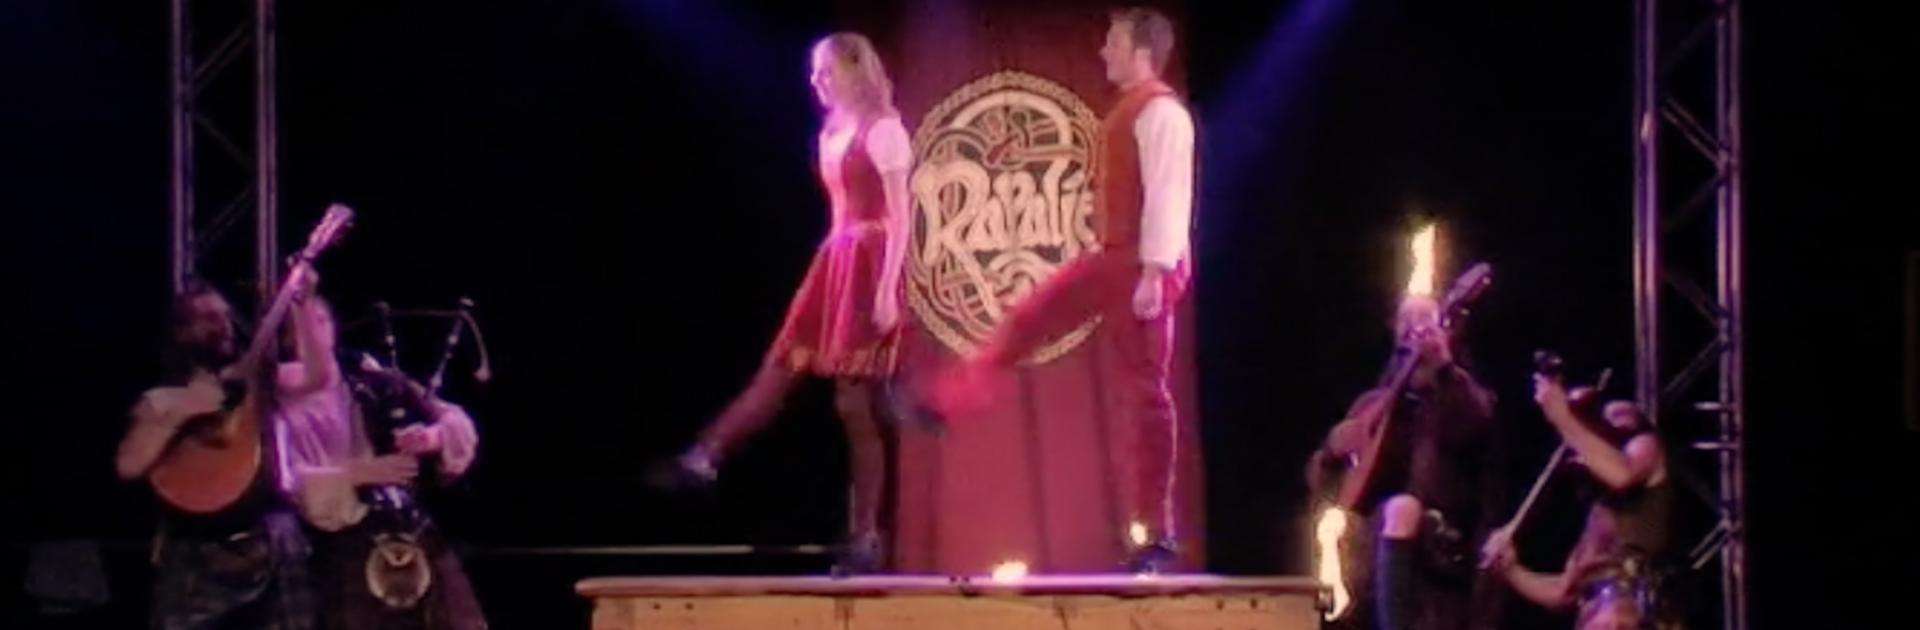 Irish-step-dance-tabletop-kweetnie-set-Rapalje-Balver-Höhle-Irish-folk-Celtic-Music-Festival